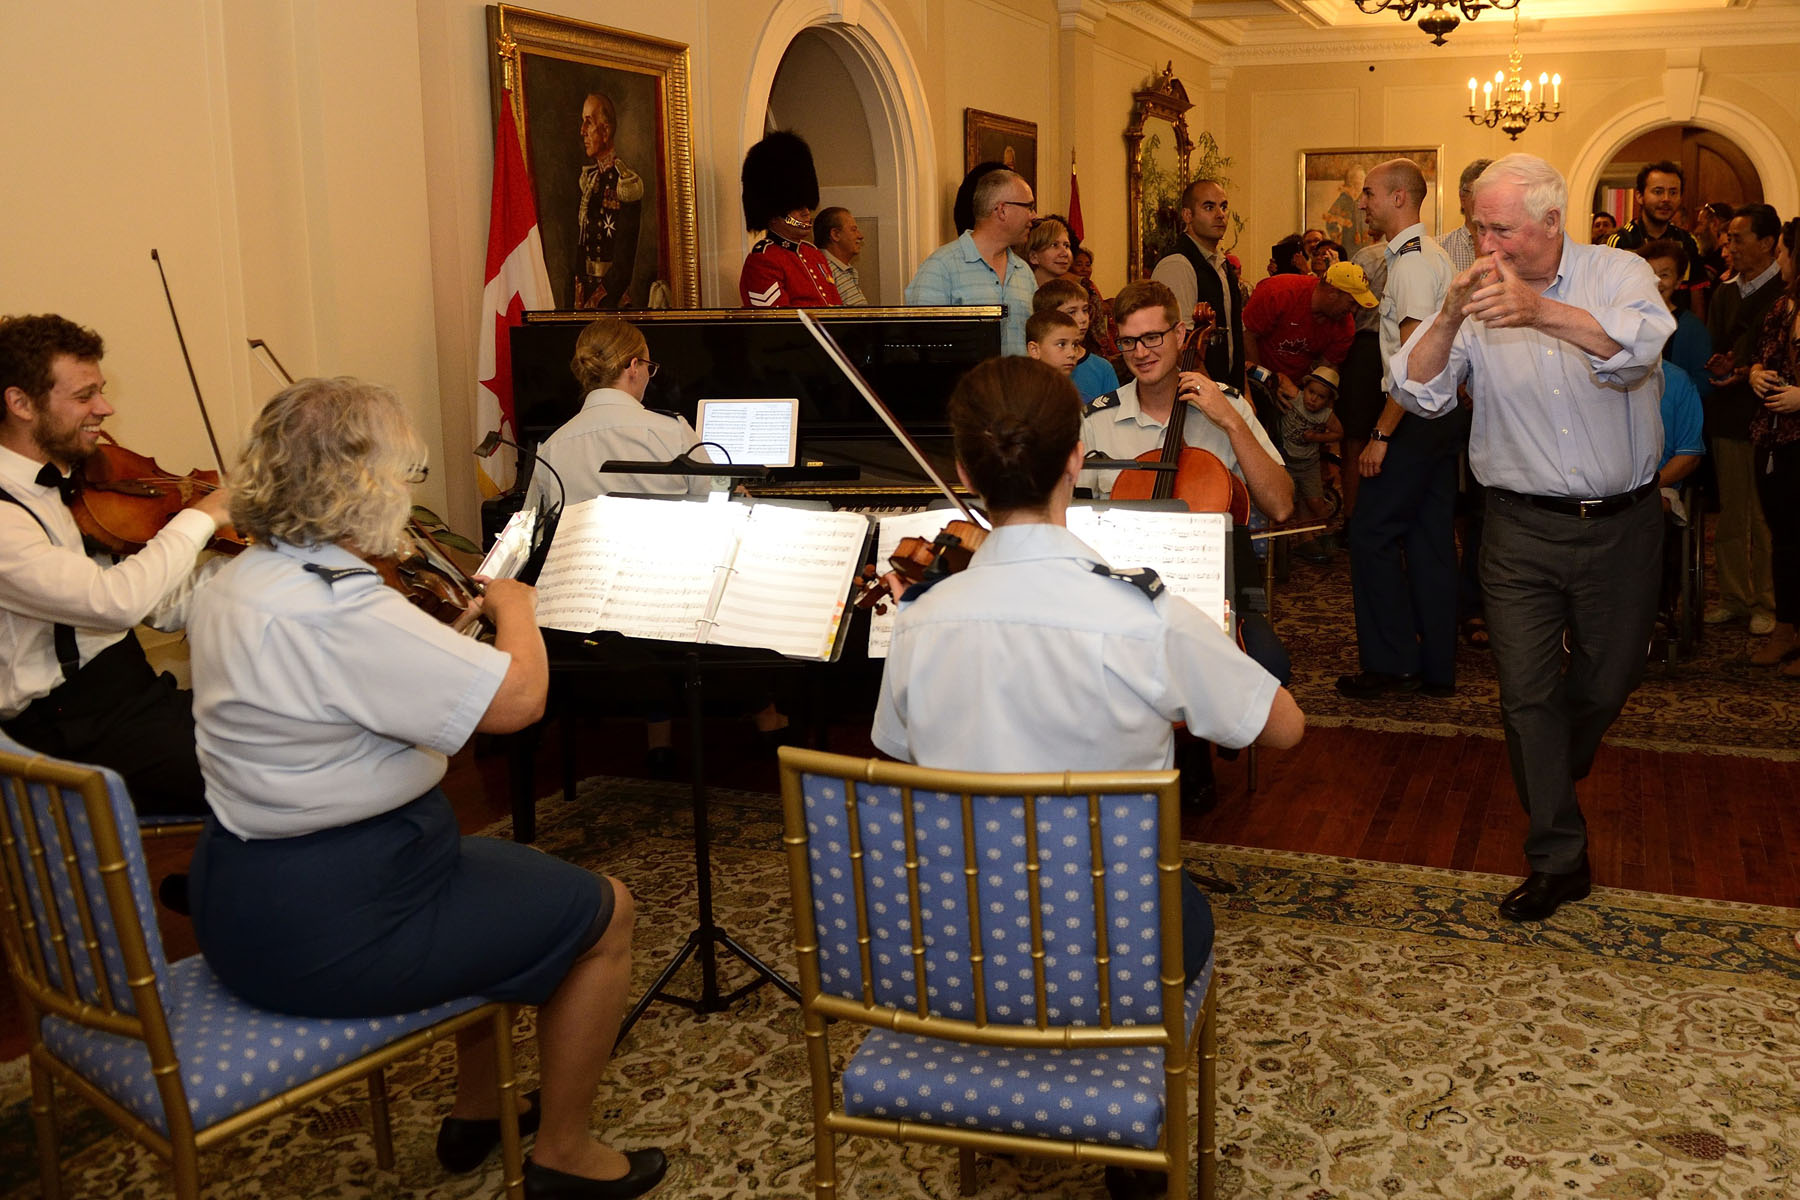 The Governor General and visitors danced to the beat of the string quartet.